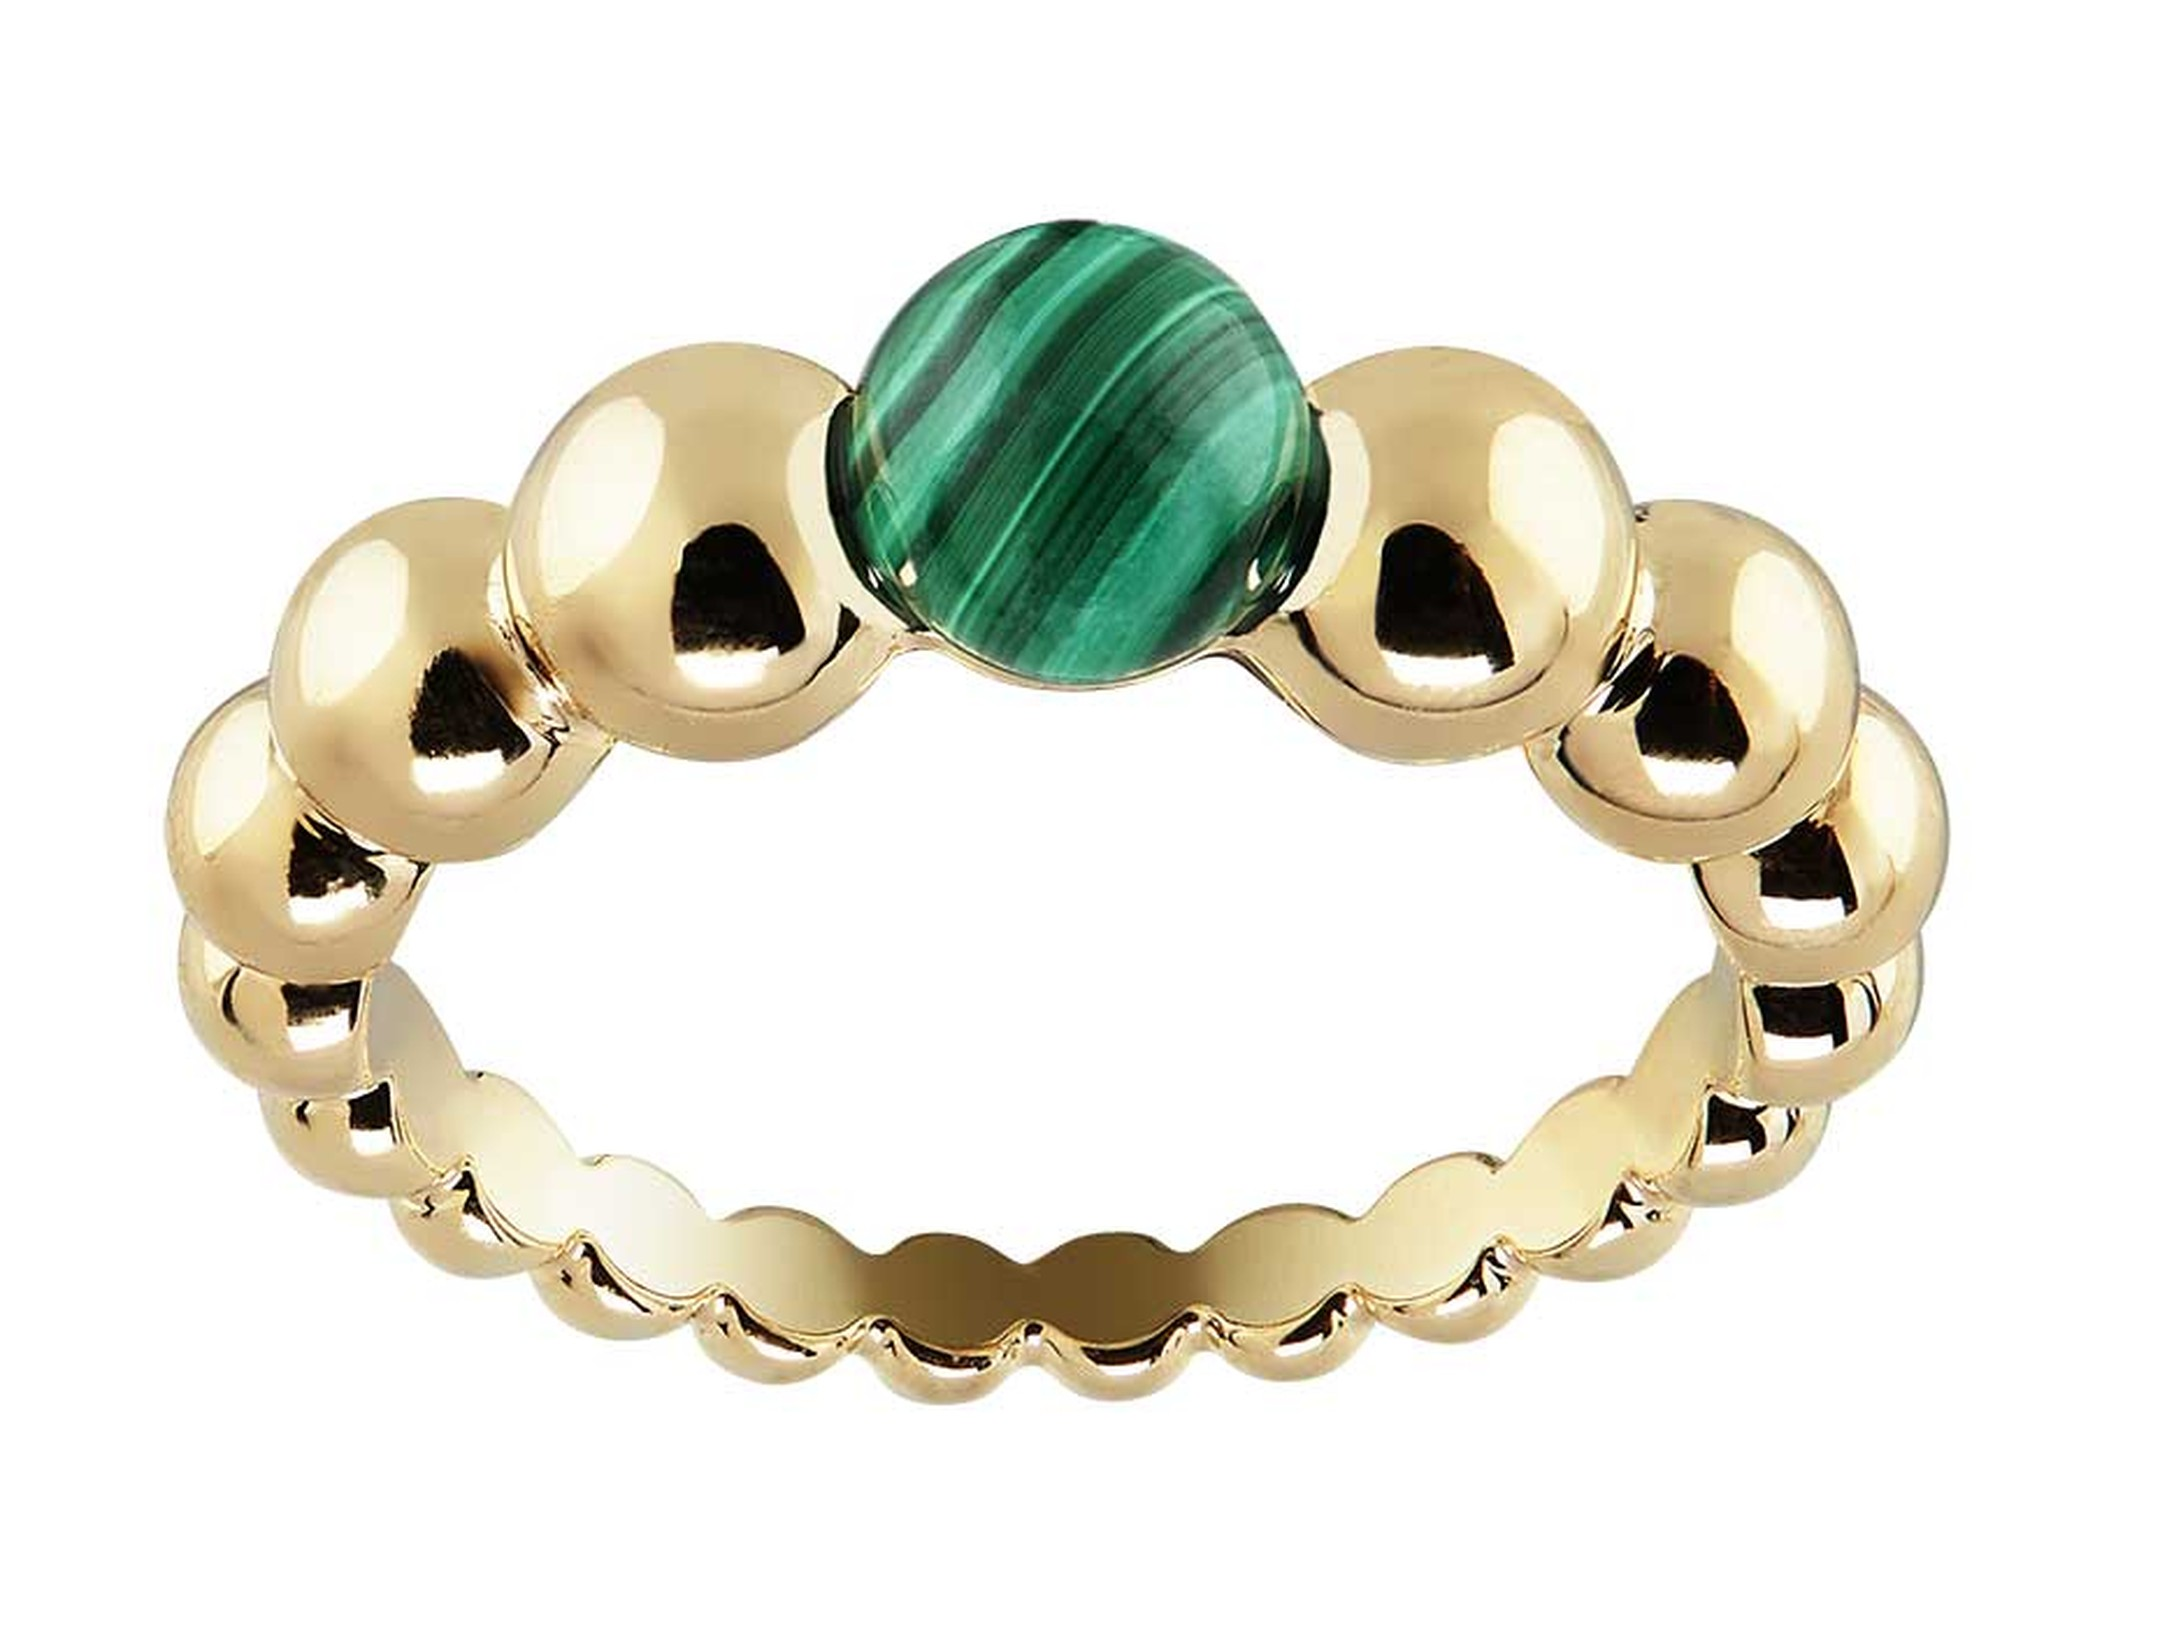 Van Cleef & Arpels Perlée Couleur ring in yellow gold with a cabochon malachite.